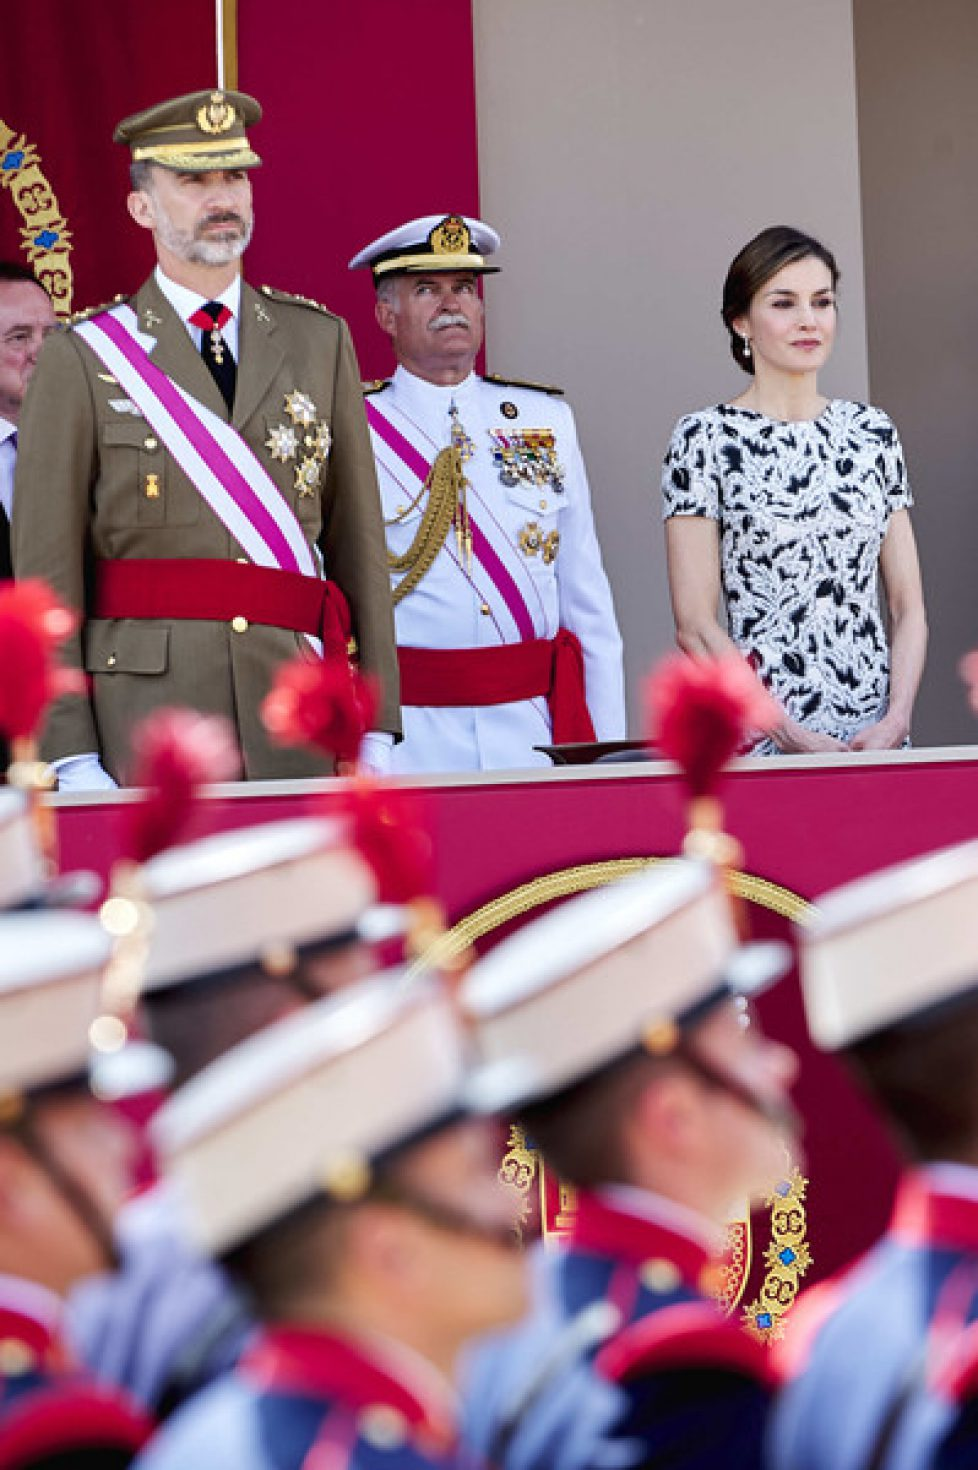 Spanish+Royals+Attend+Armed+Forces+Day+2017+pWYLPaWSc25l